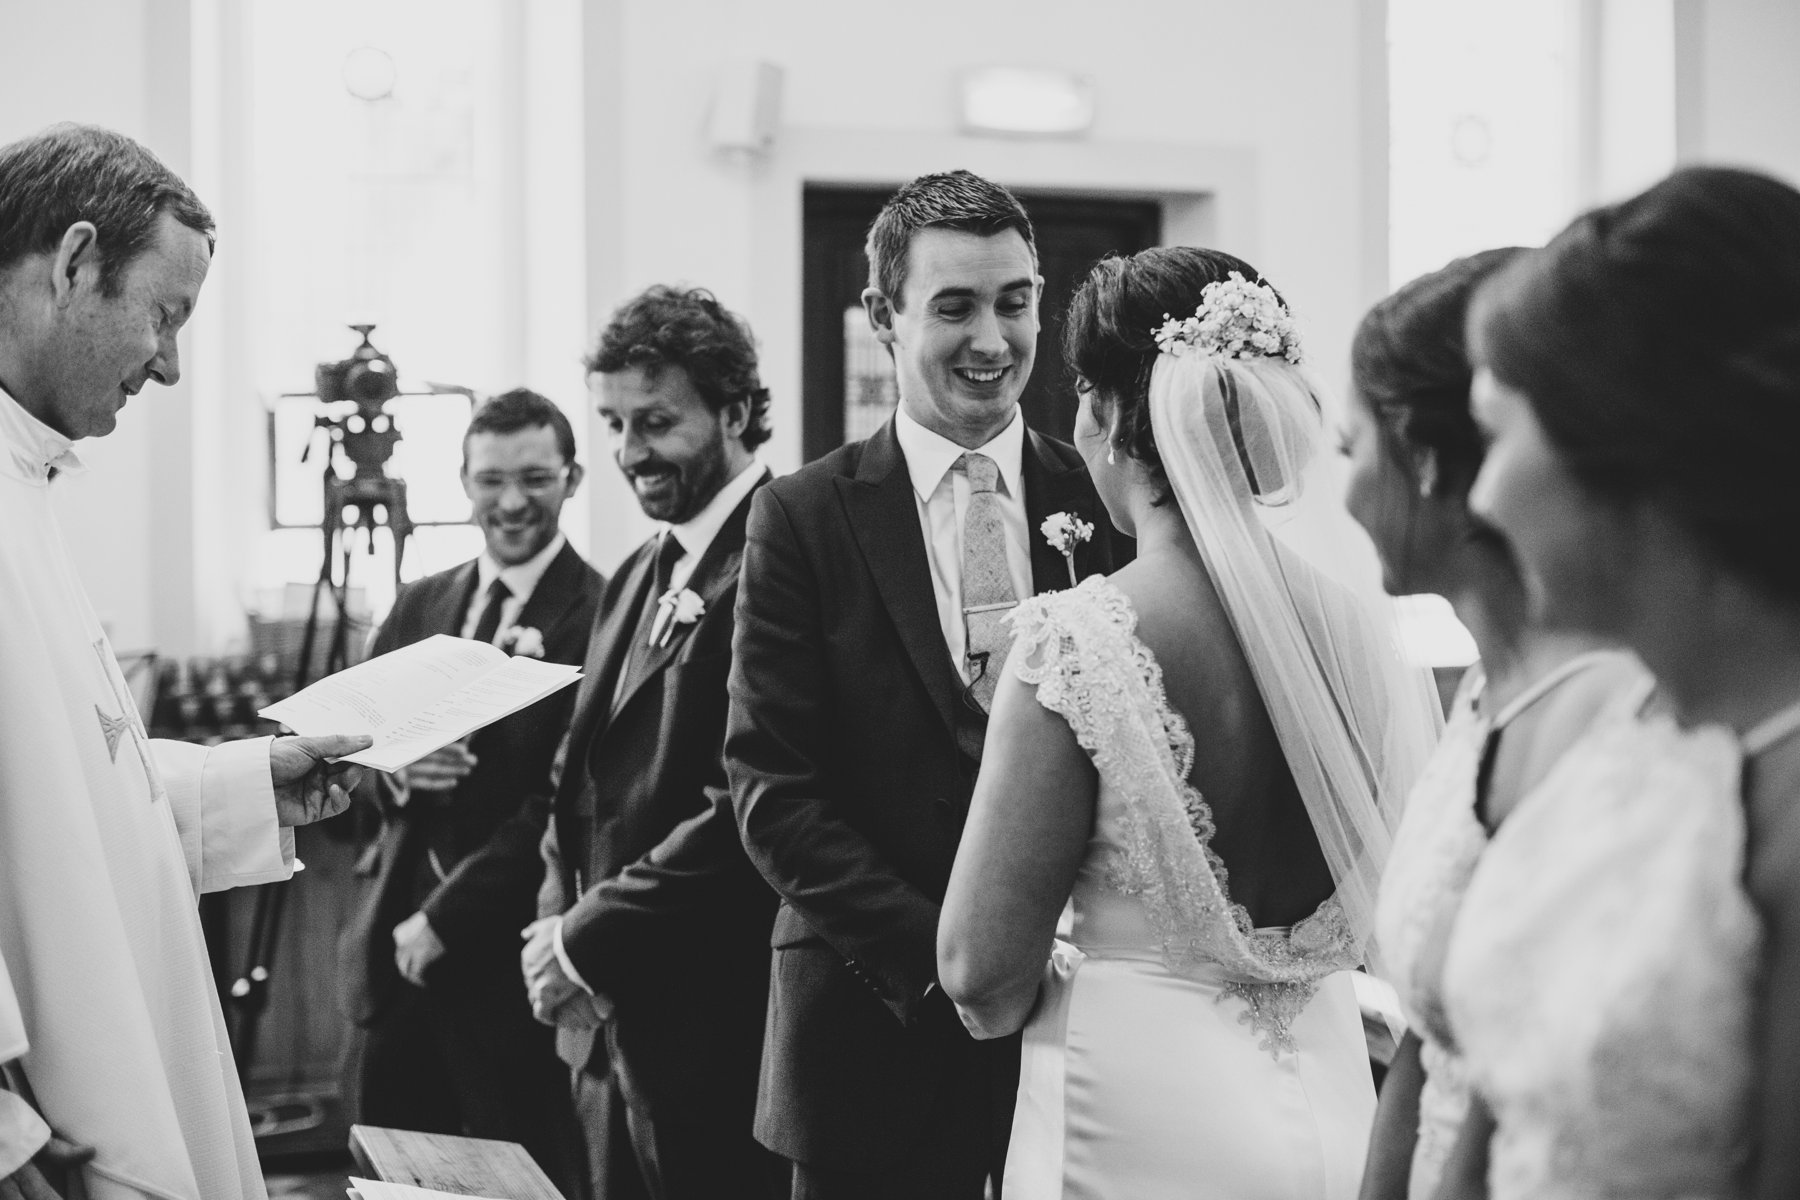 neilhannah-donegalwedding_0065